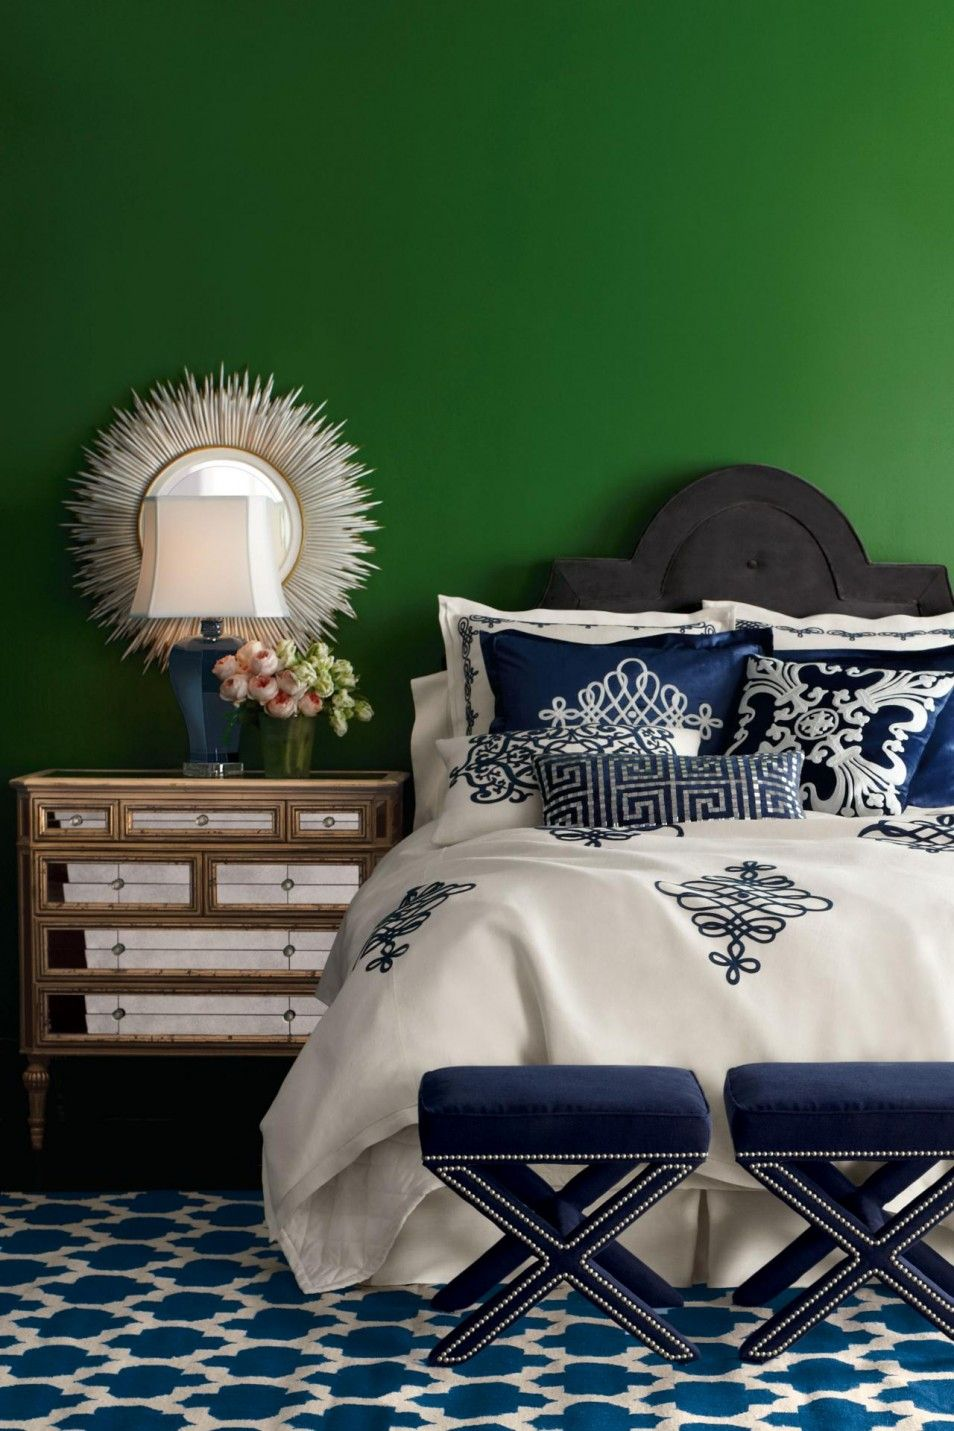 The Amazing Blue And Green Bedrooms Design At Apartment Amazing Luxury Bedroom Furniture Ideas Blue Gre Green Bedroom Walls Bedroom Green Bedroom Color Schemes